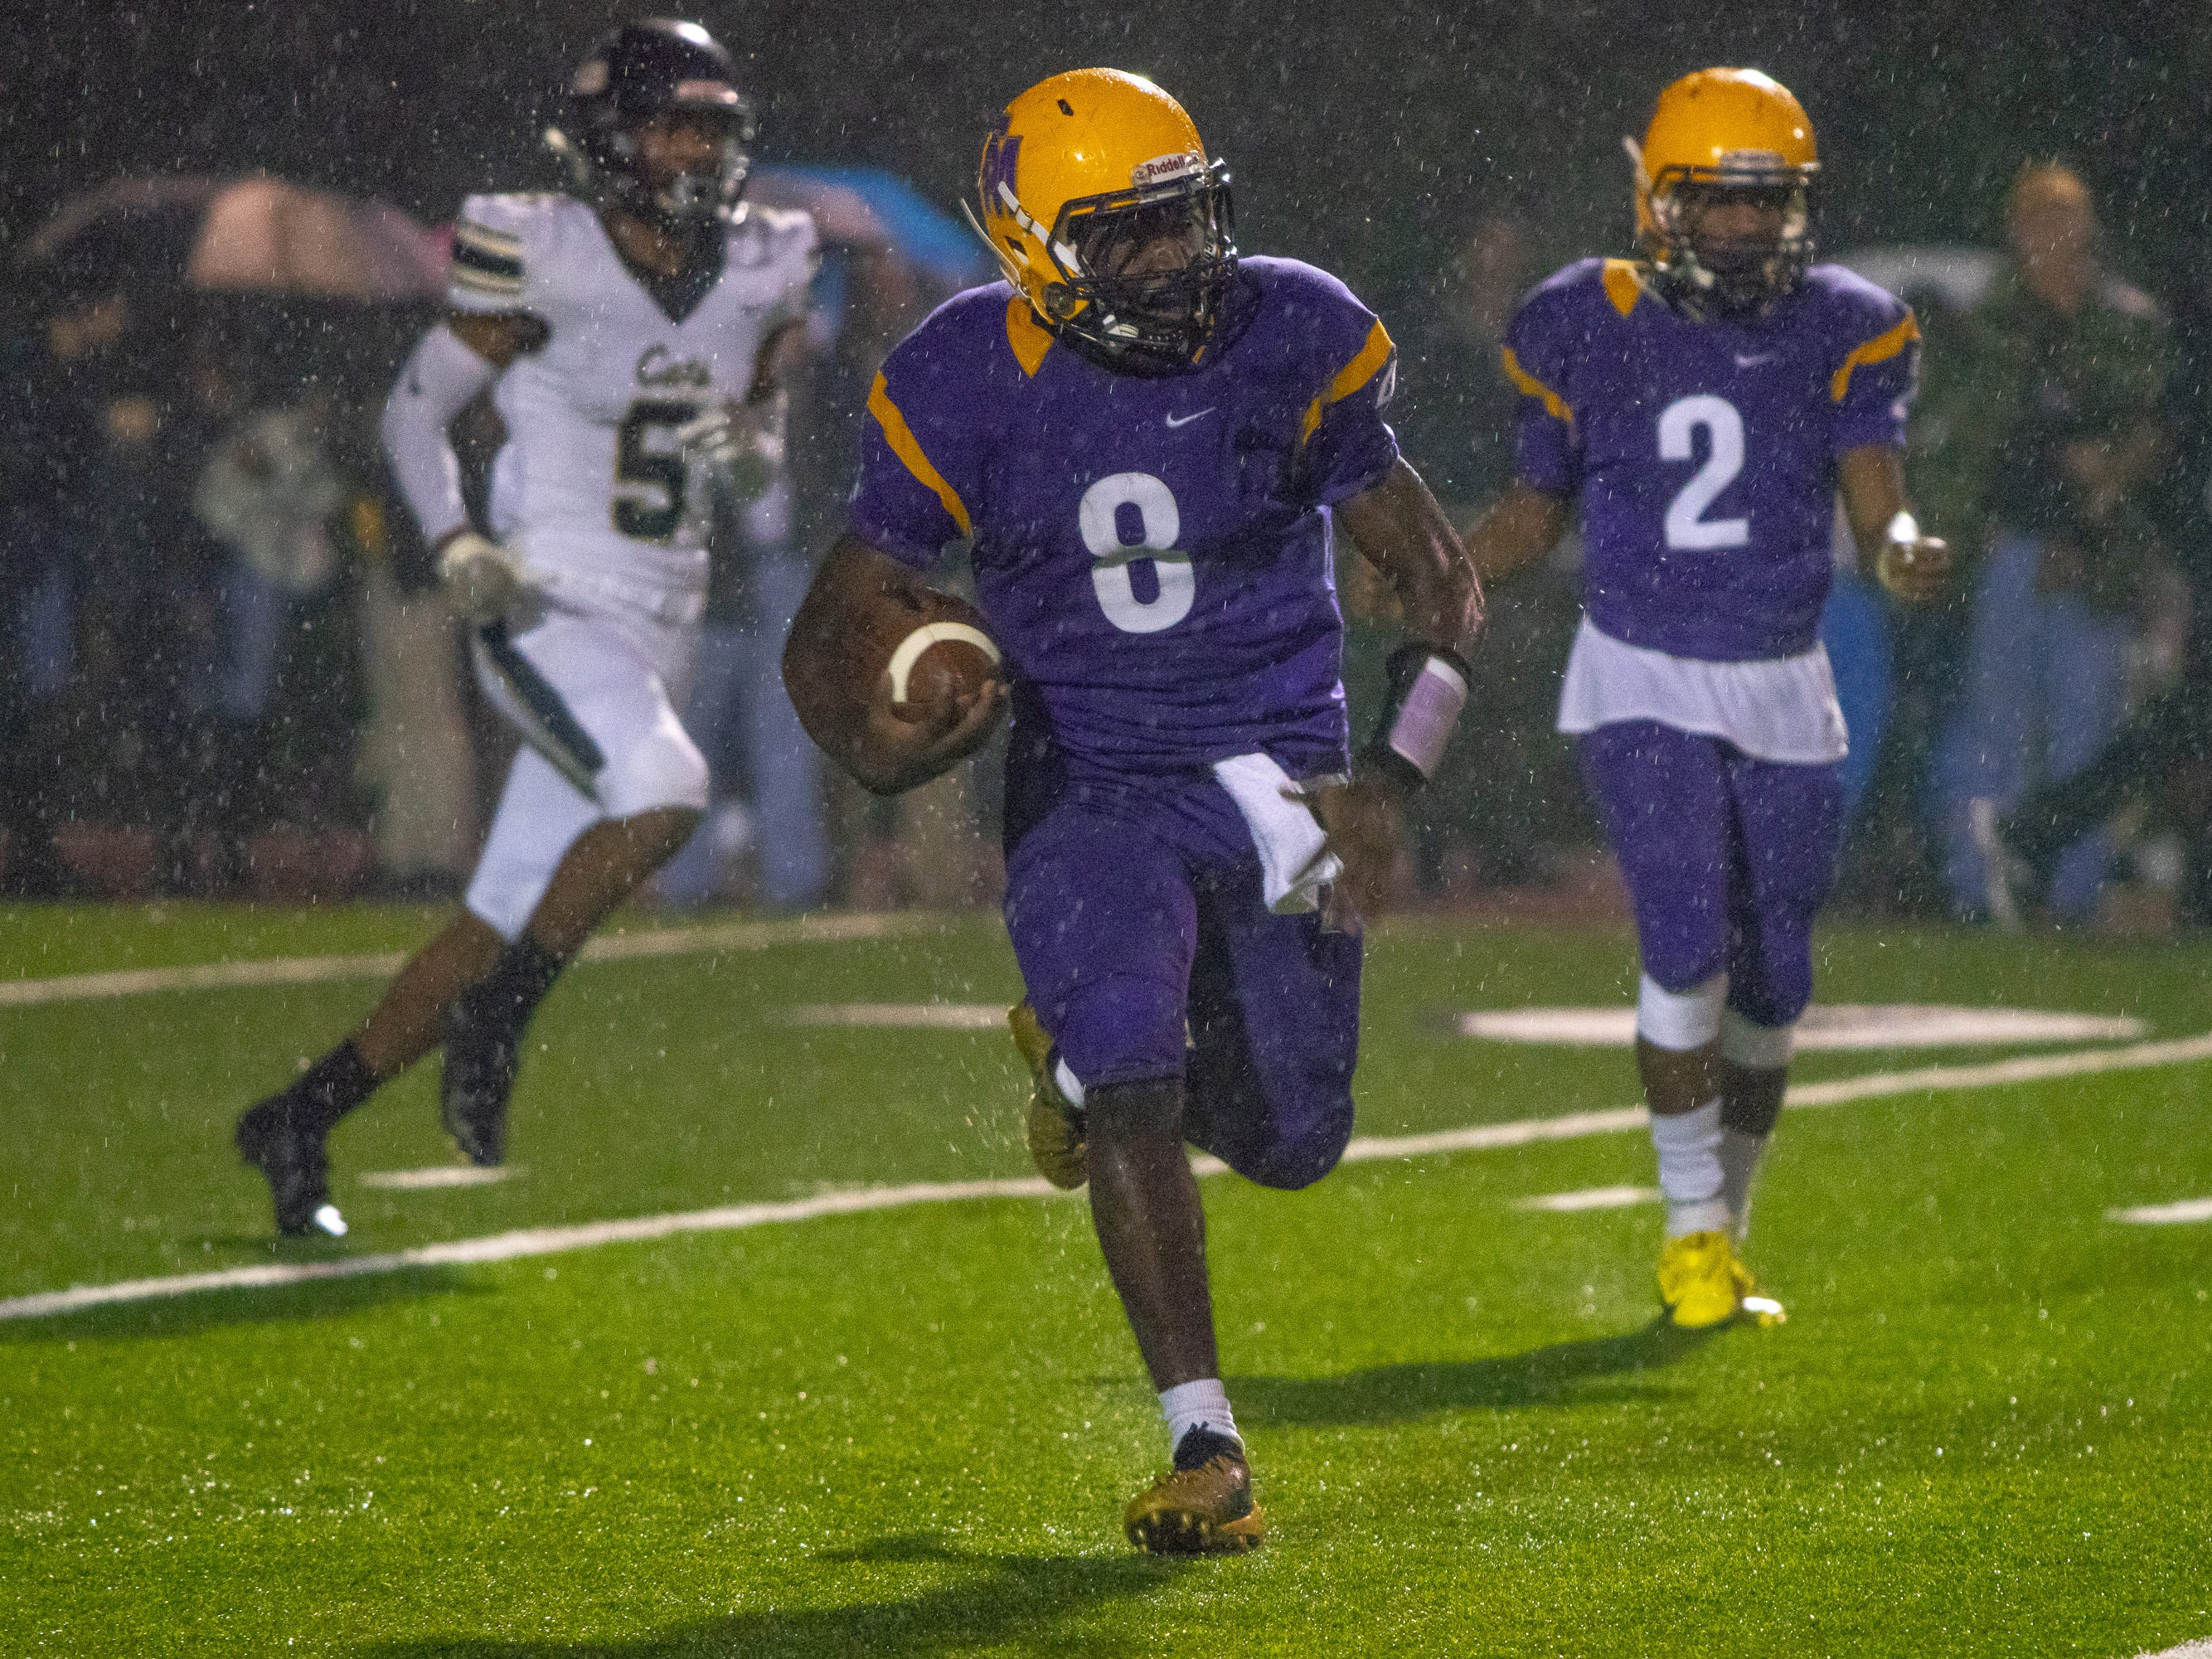 St. Martinville's Markavon Williams sprints with the ball as the St. Martinville Tigers take on the Leesville Wampus Cats at St. Martinville High School on Nov. 23, 2018.